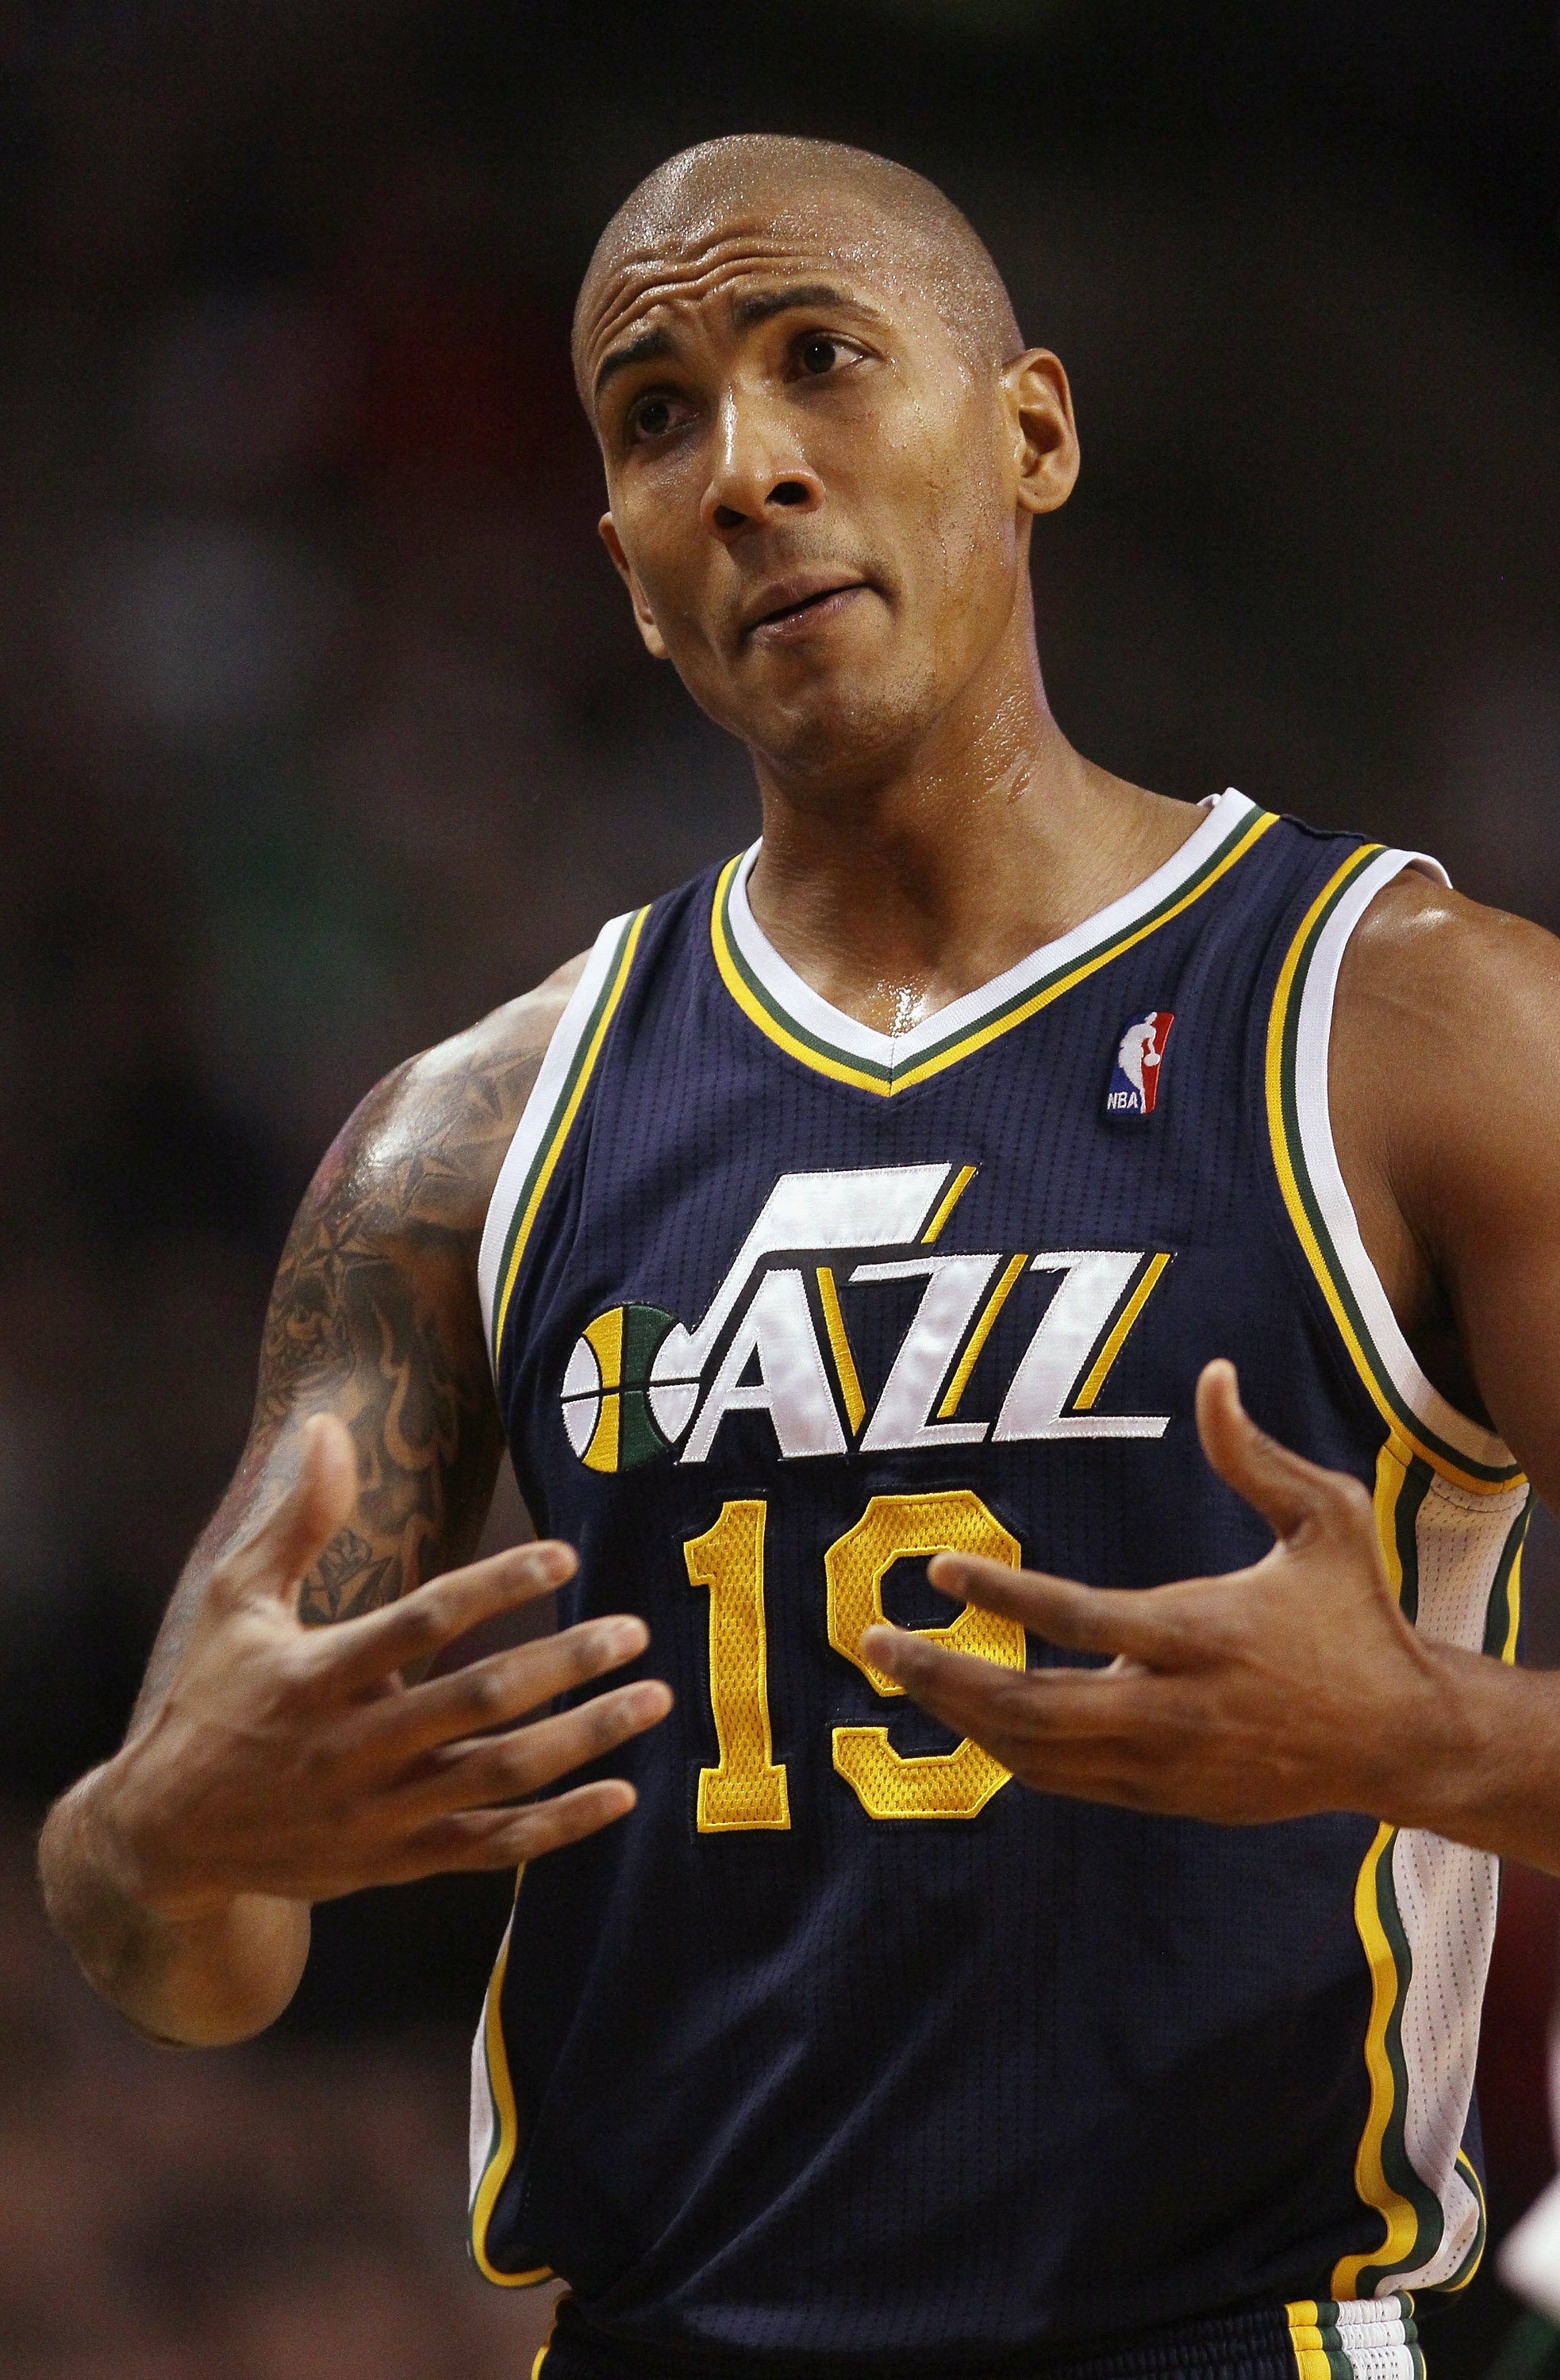 BOSTON, MA - JANUARY 21:  Raja Bell #19 of the Utah Jazz reacts after he is called for a foul in the first quarter against the Boston Celtics on January 21, 2011 at the TD Garden in Boston, Massachusetts.  NOTE TO USER: User expressly acknowledges and agr